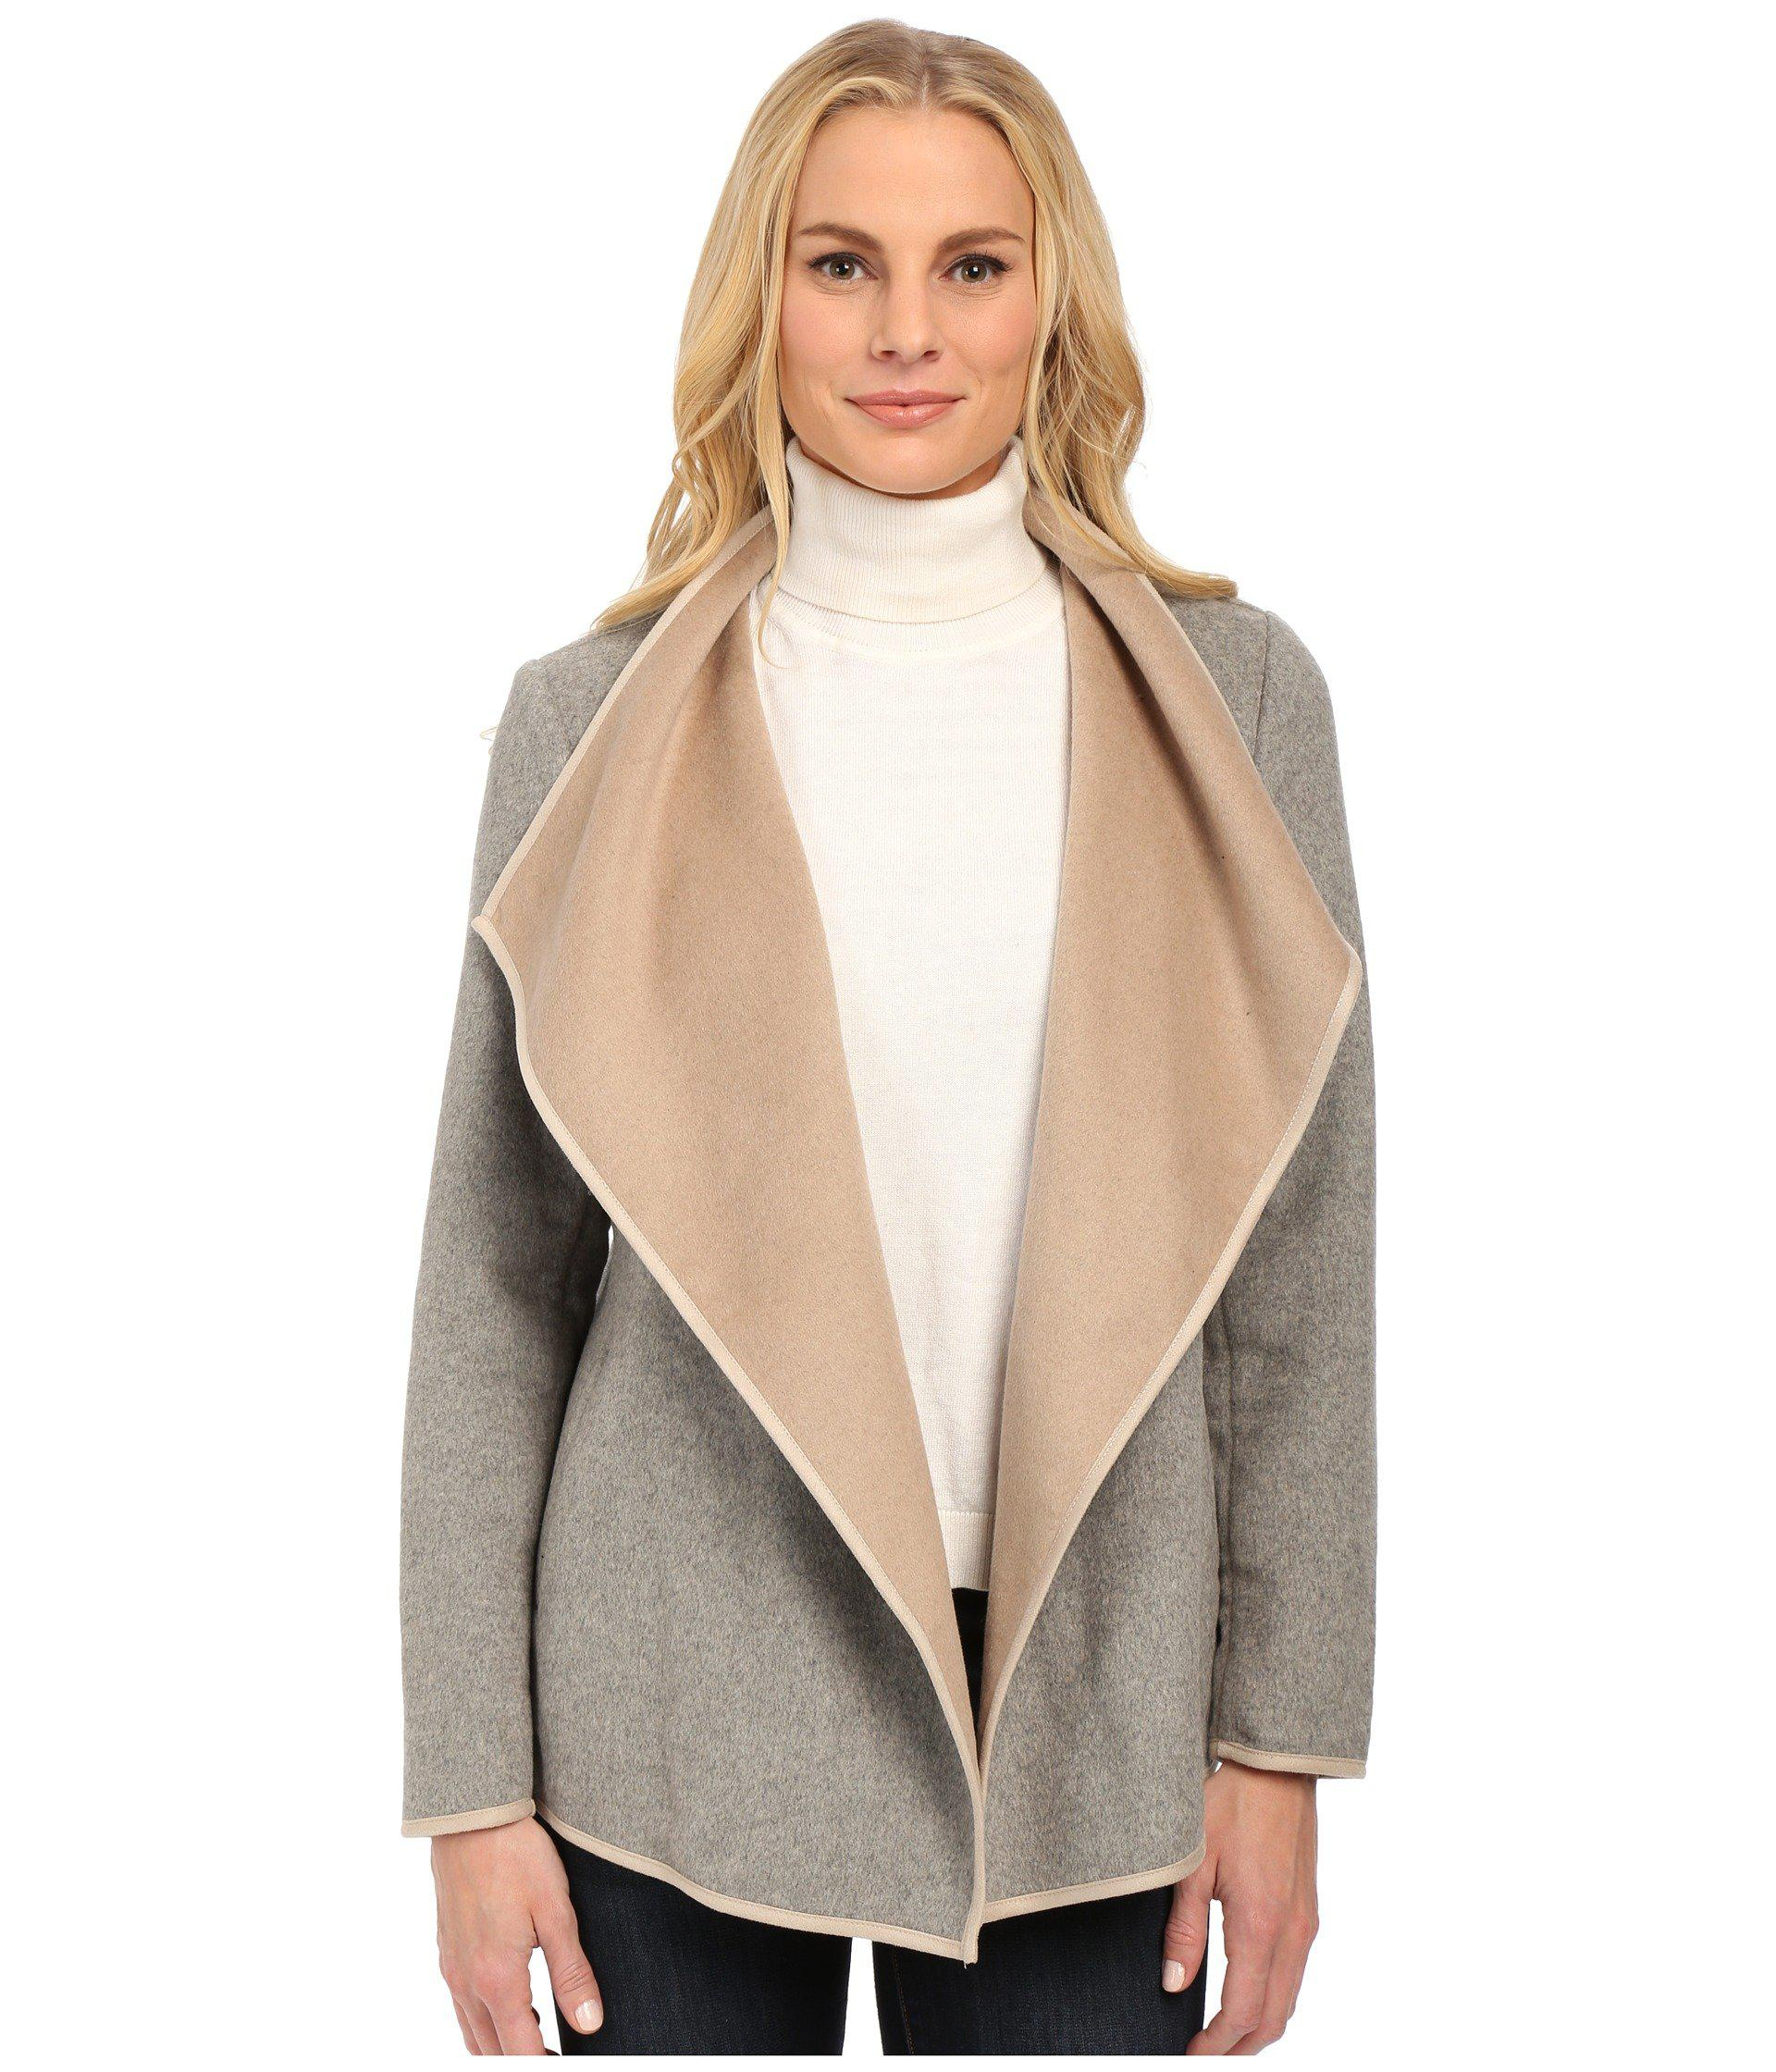 lyst coat clothing dakota khaki jack s in front drape women natural abreila drapes bb